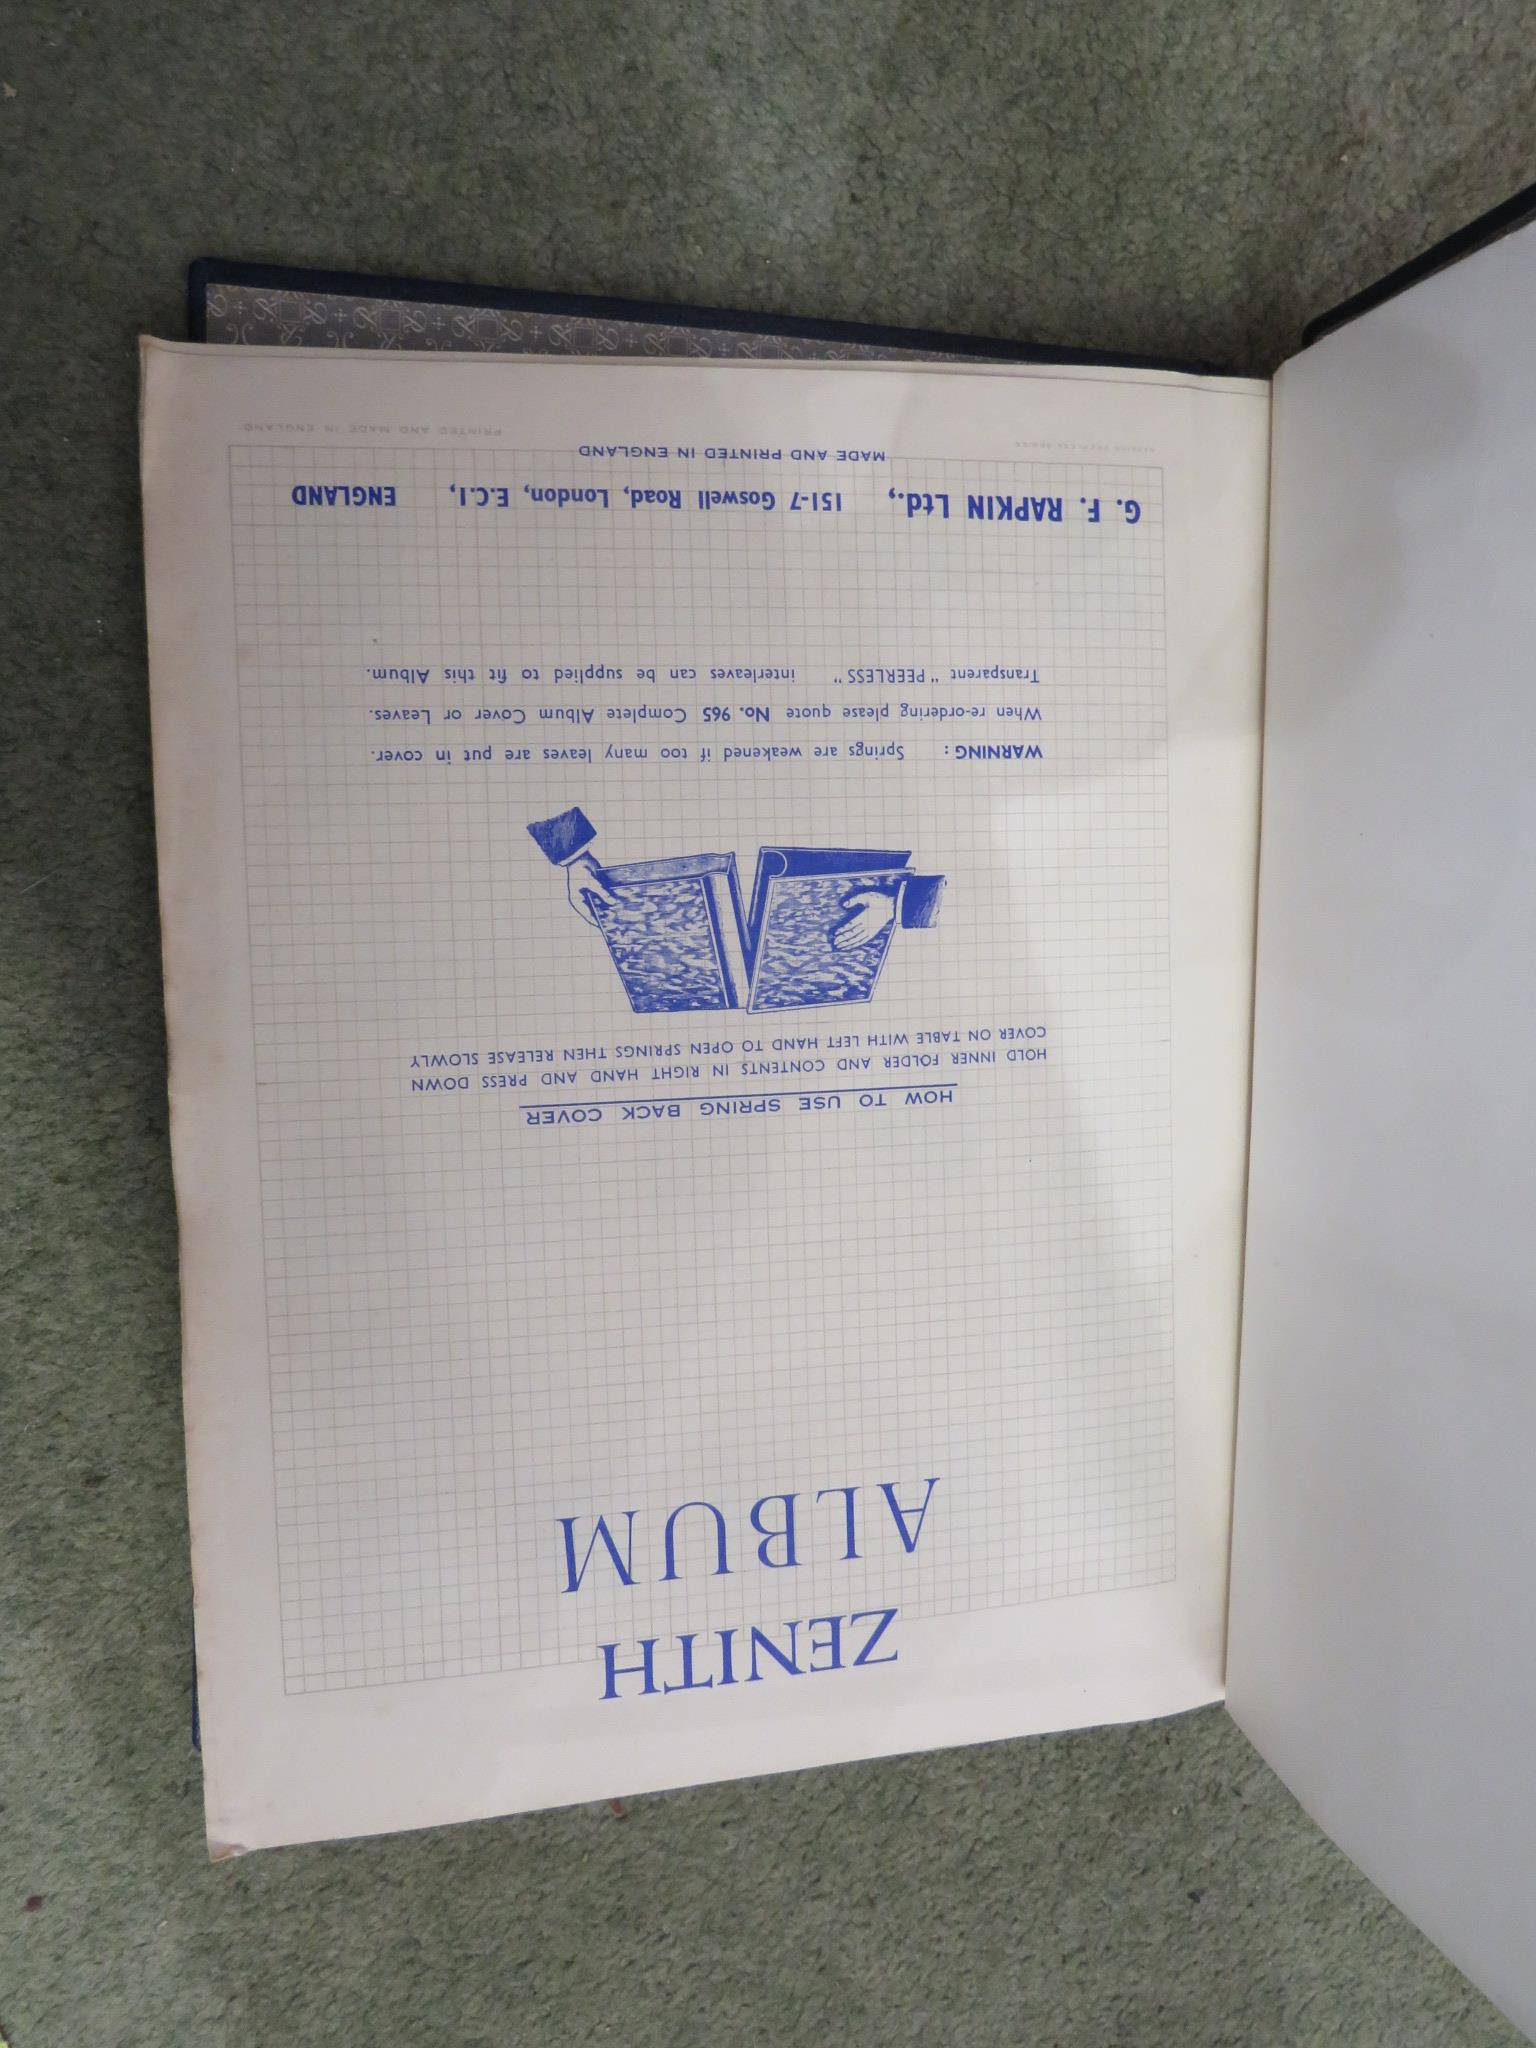 BLUE ZENITH STAMP ALBUM AND RED IMPROVED POSTAGE STAMP ALBUM WITH CONTENTS, TOGETHER WITH COVERS AND - Image 2 of 5